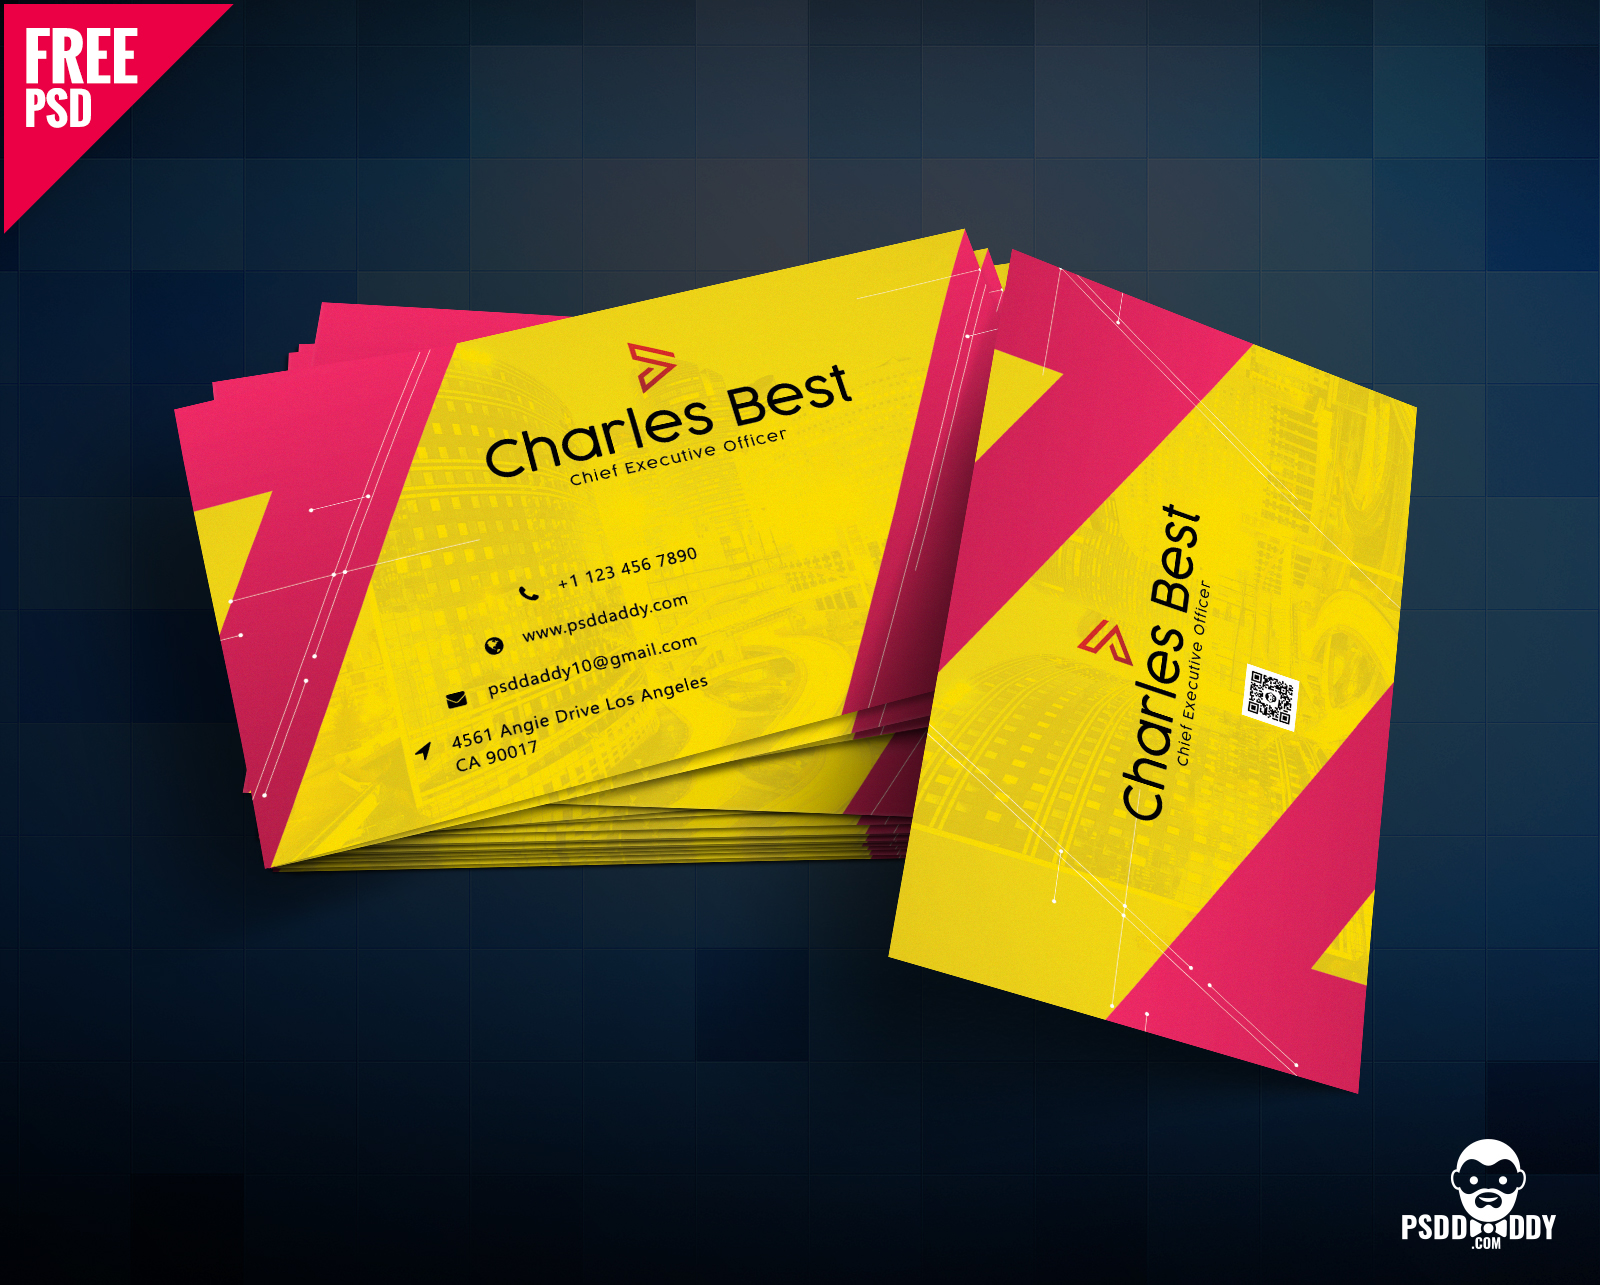 Creative business card template psd free download psddaddy business card design business card design templates business card dimensions business card holder cheaphphosting Images